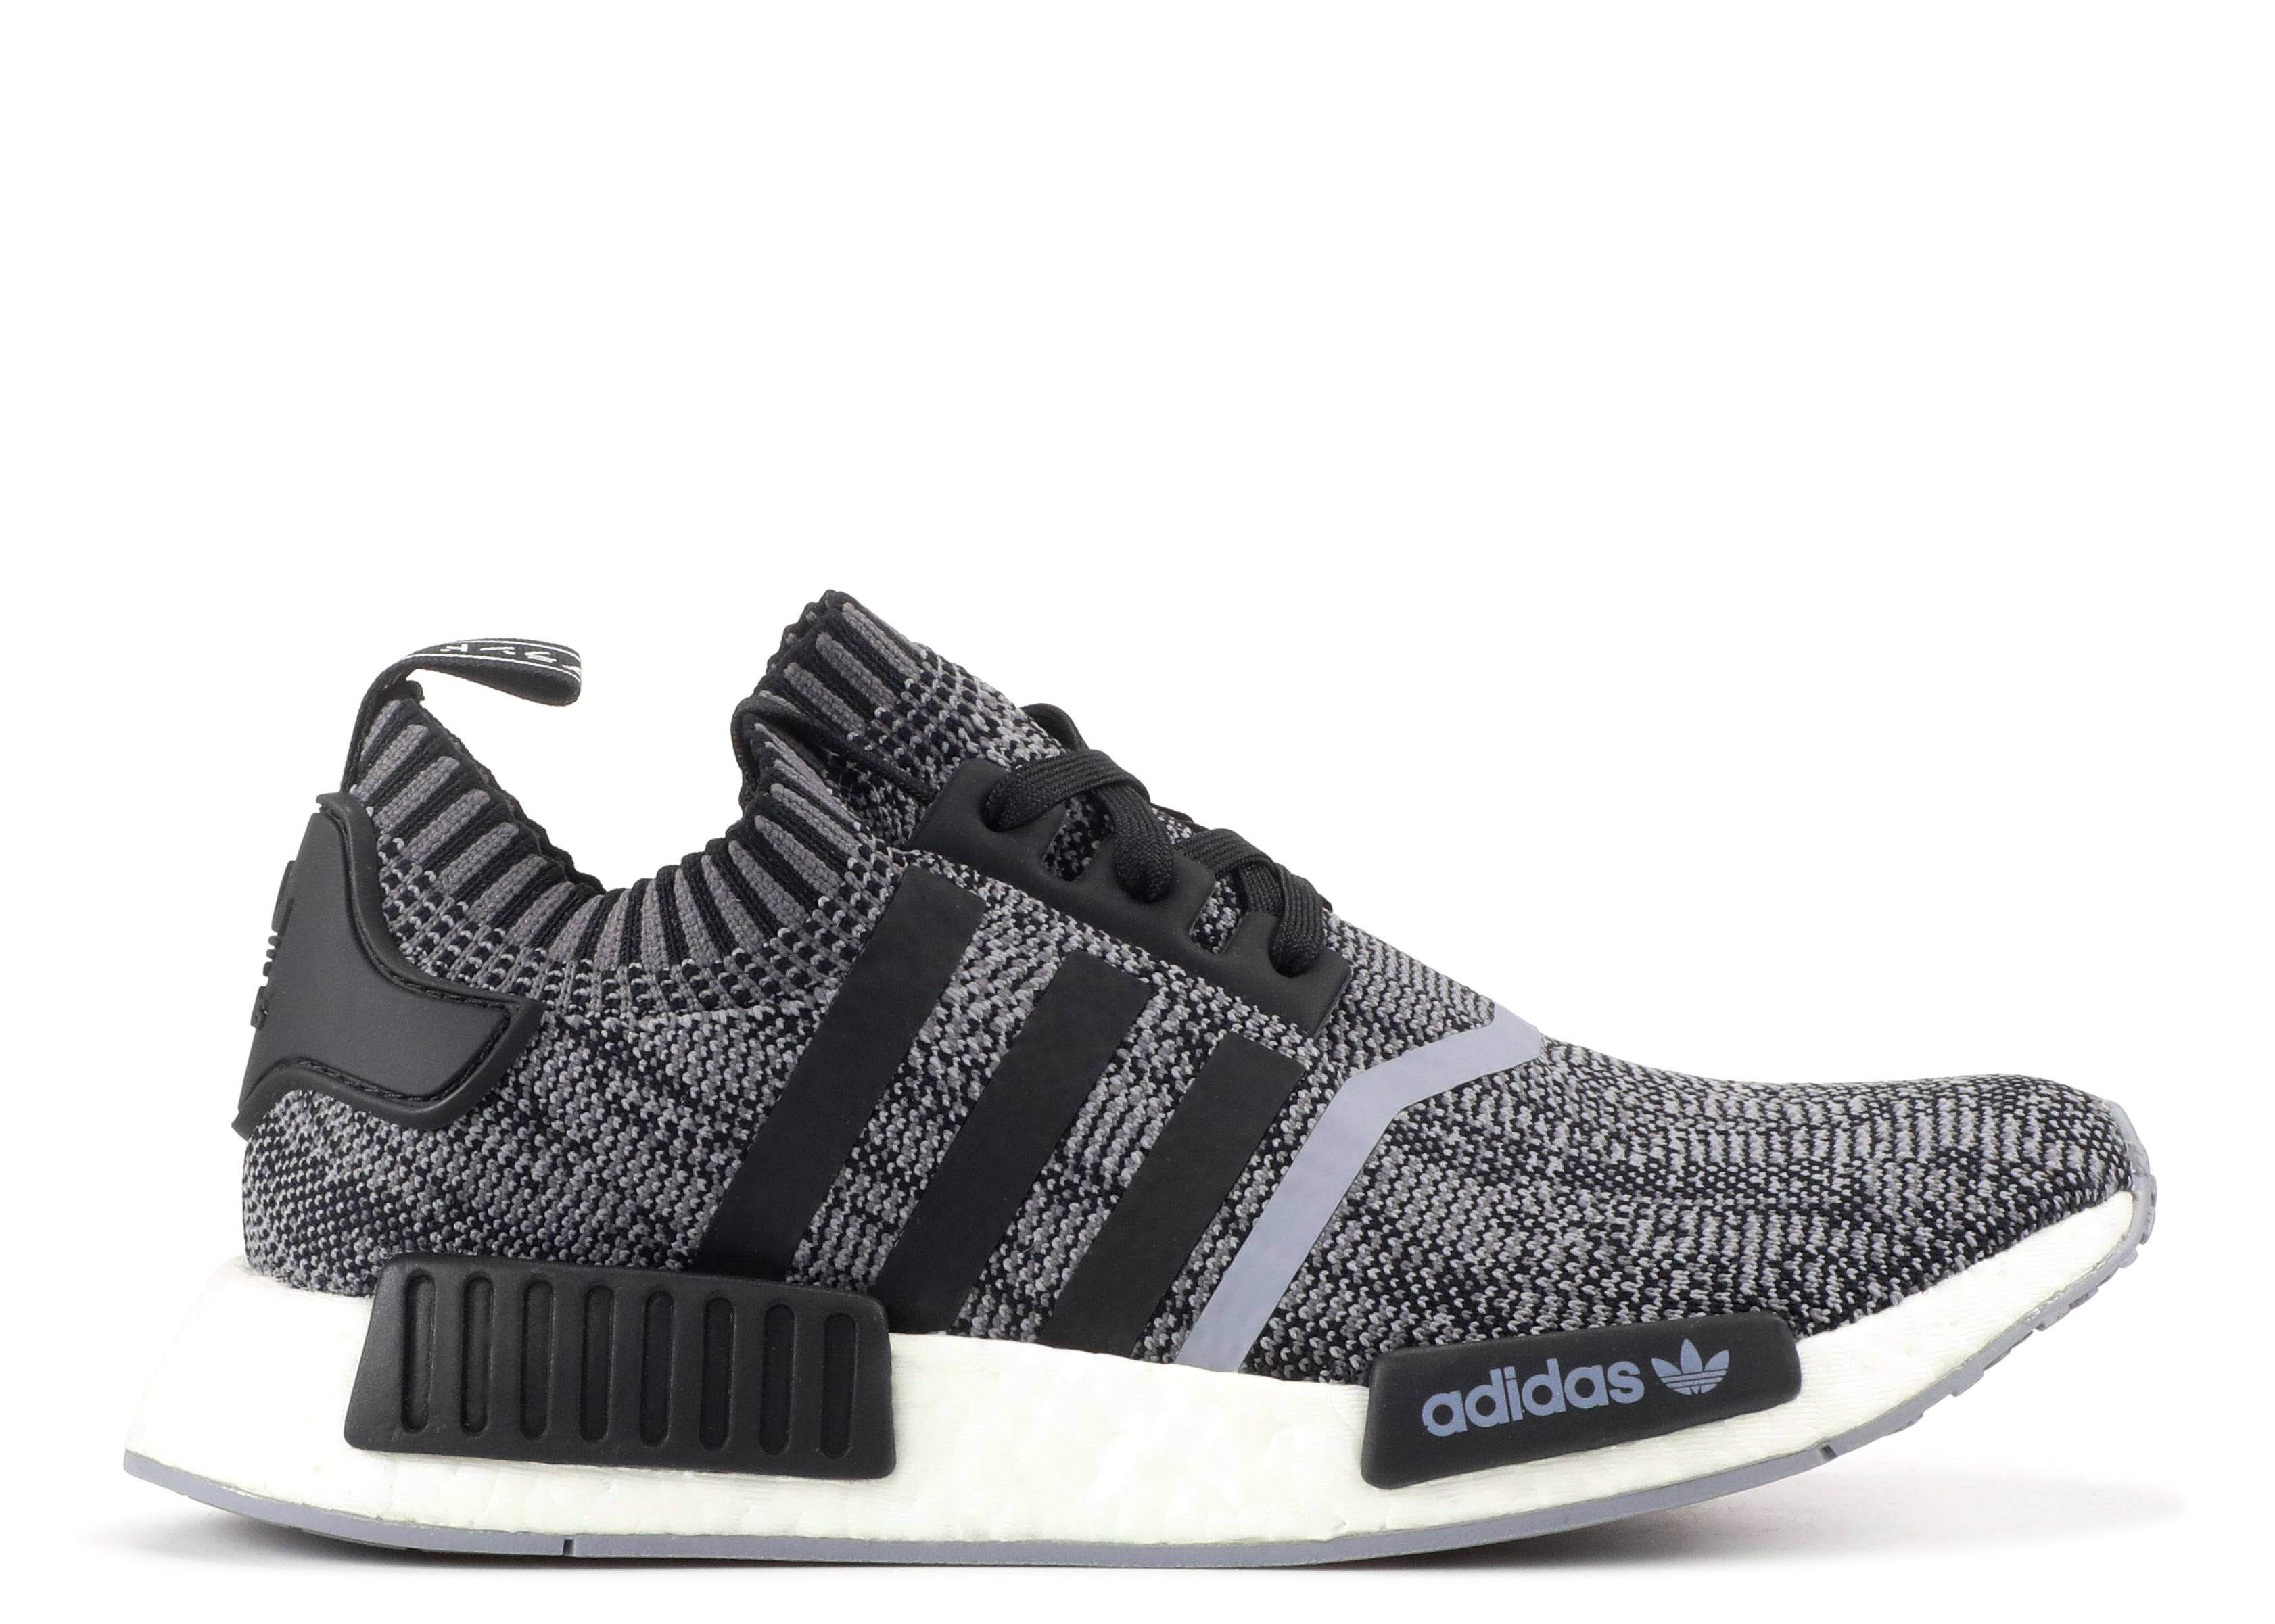 nmd r1 pk adidas cq1863 grey black white flight club. Black Bedroom Furniture Sets. Home Design Ideas